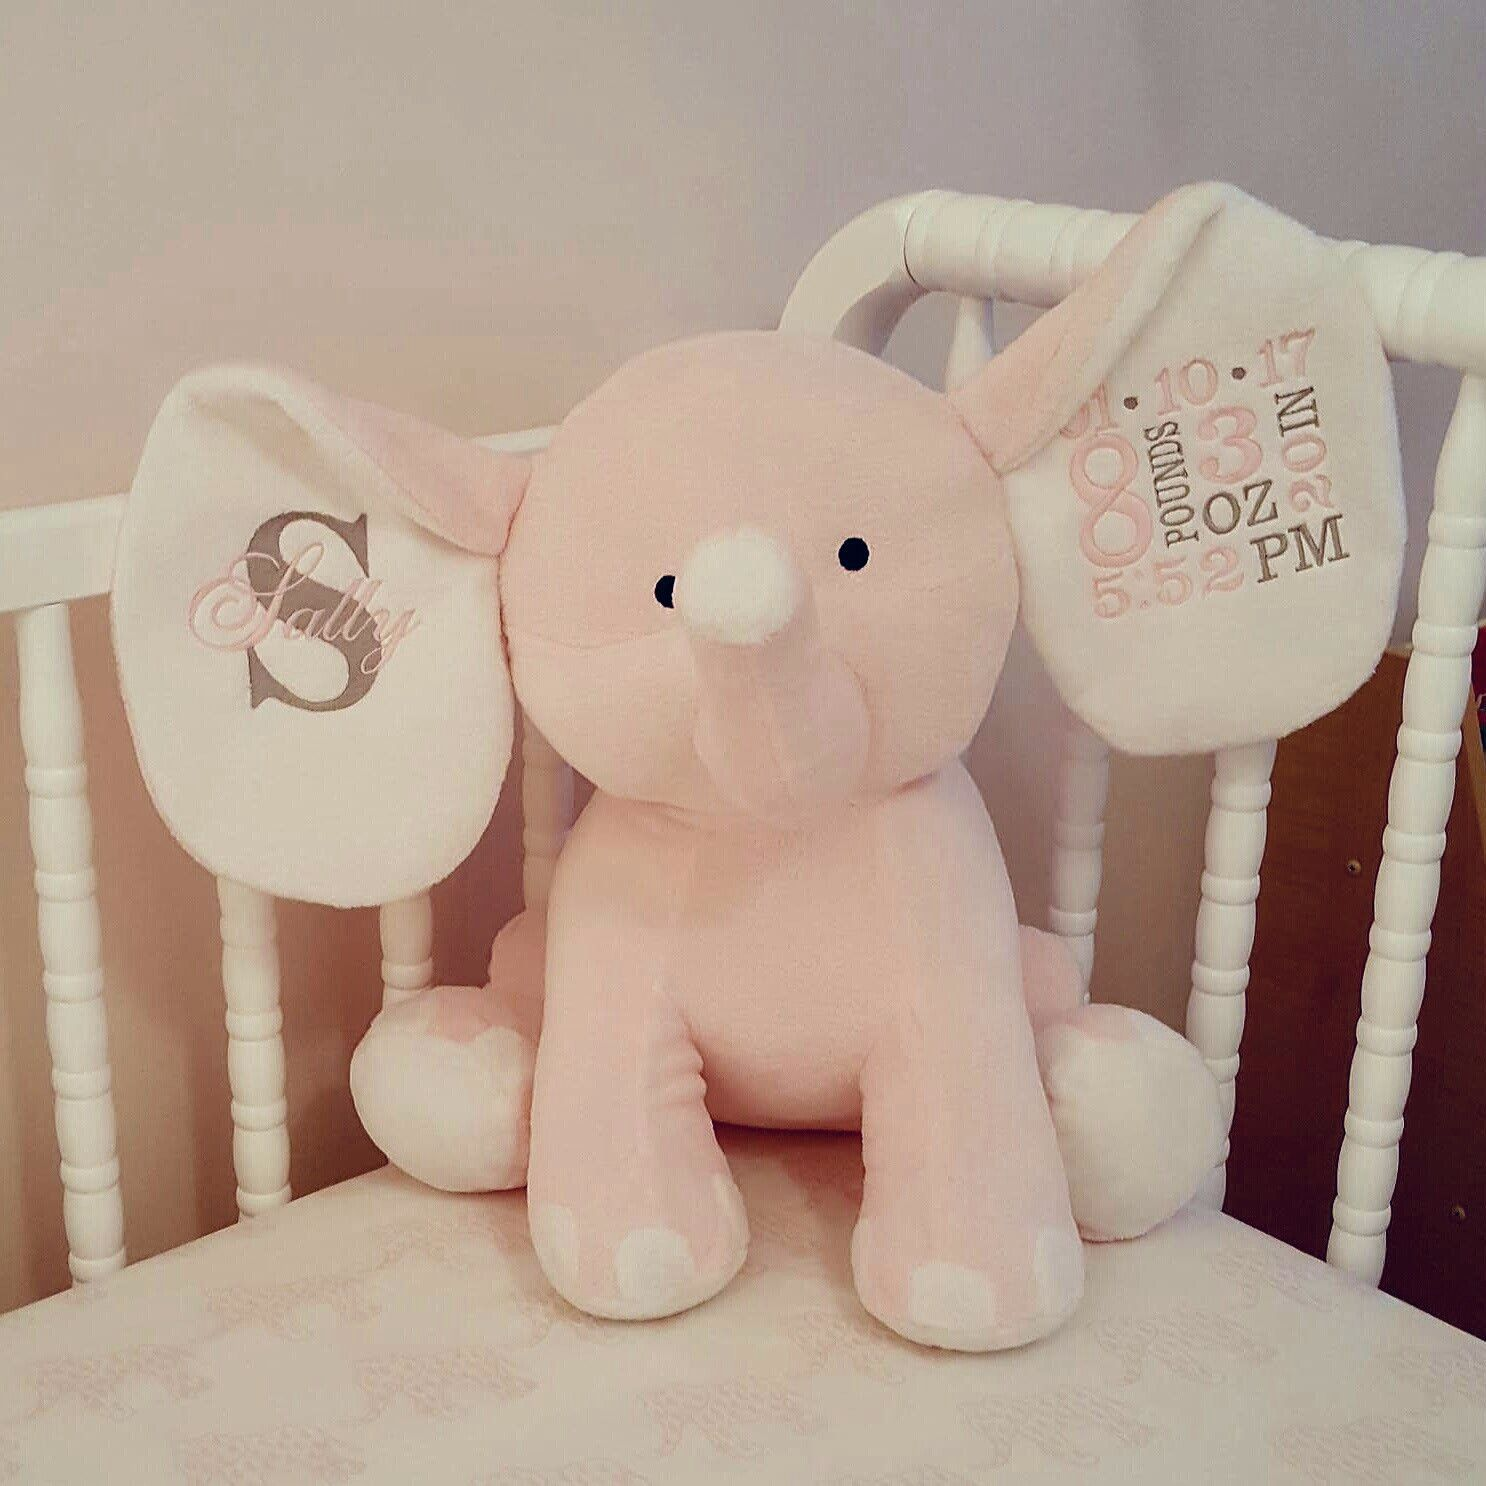 Personalized plush elephant birth announcement newborn gift ideas personalized plush elephant birth announcement newborn gift ideas negle Gallery